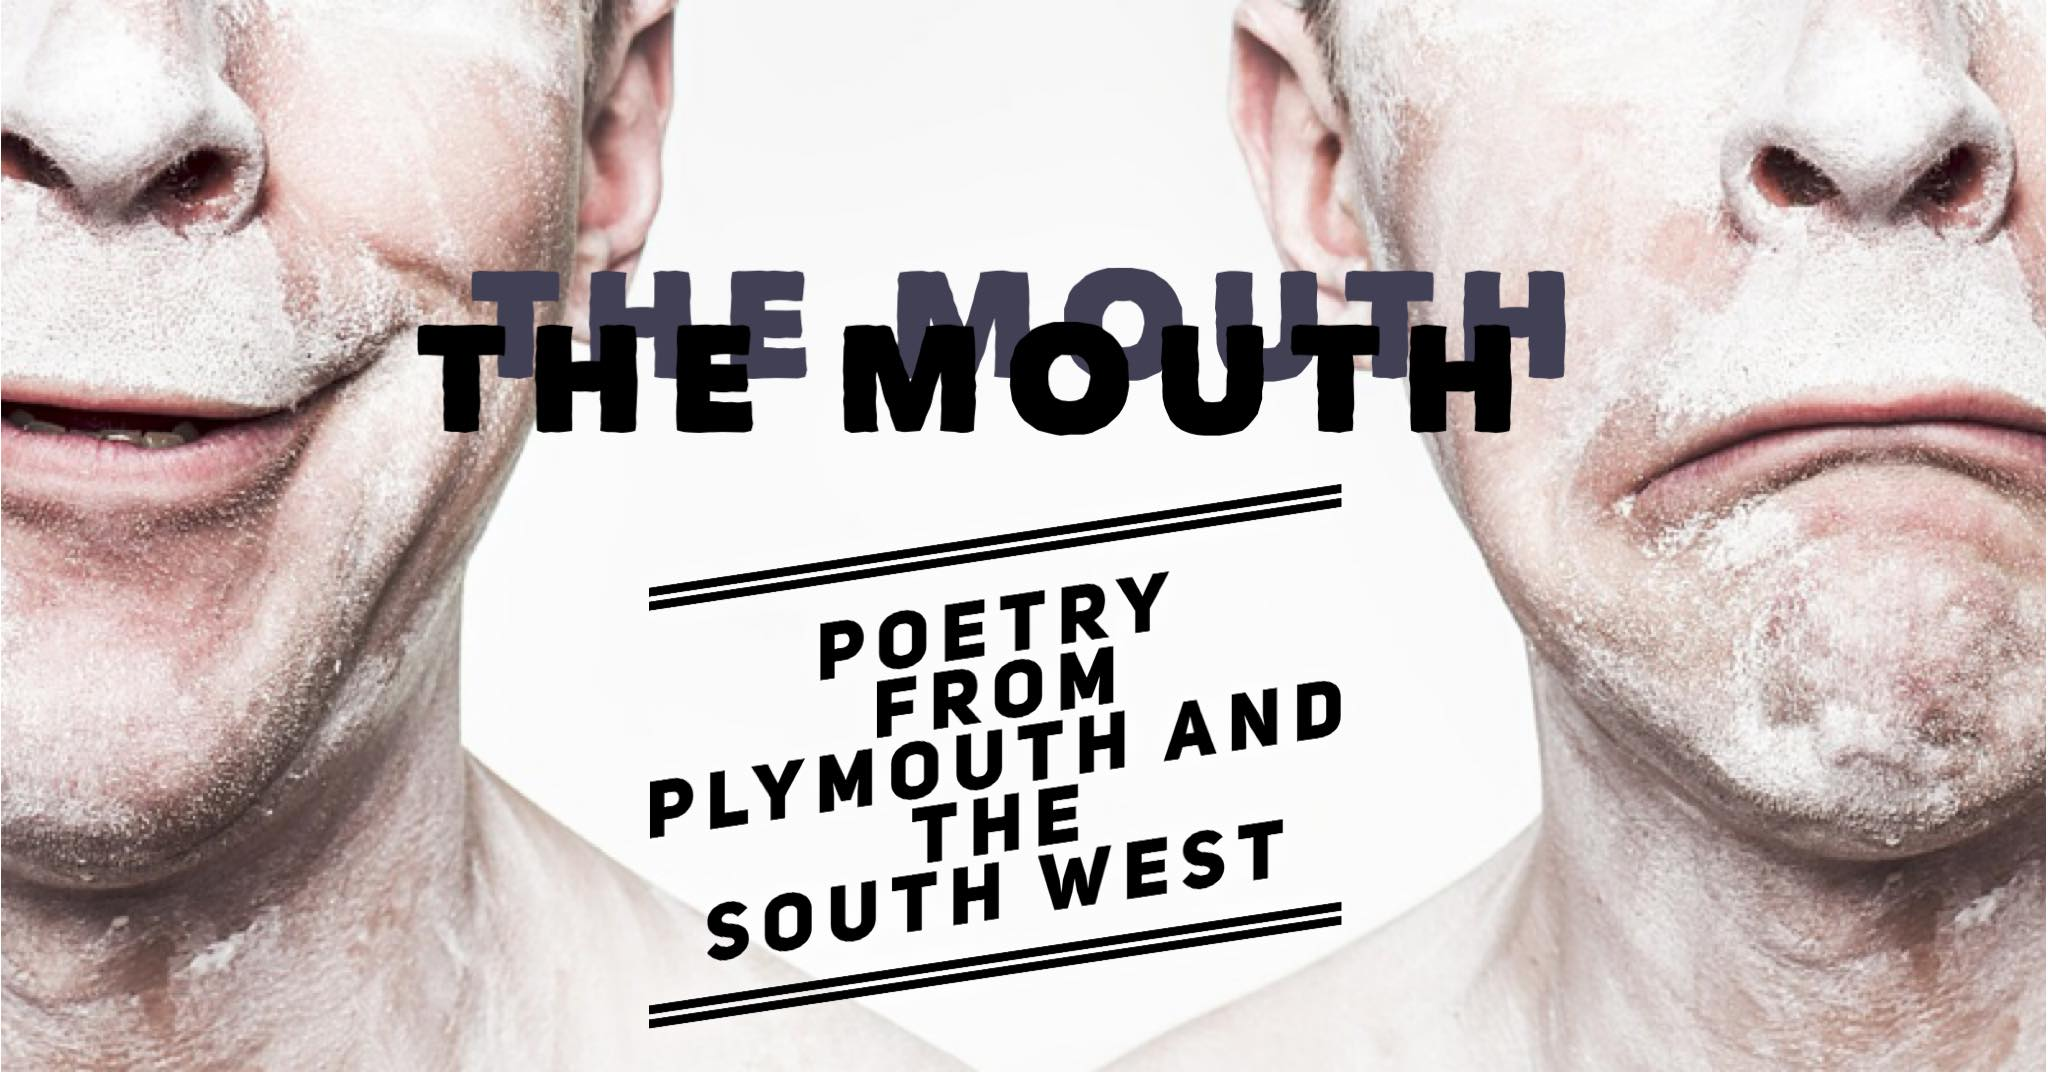 Episode 01 - The Mouth